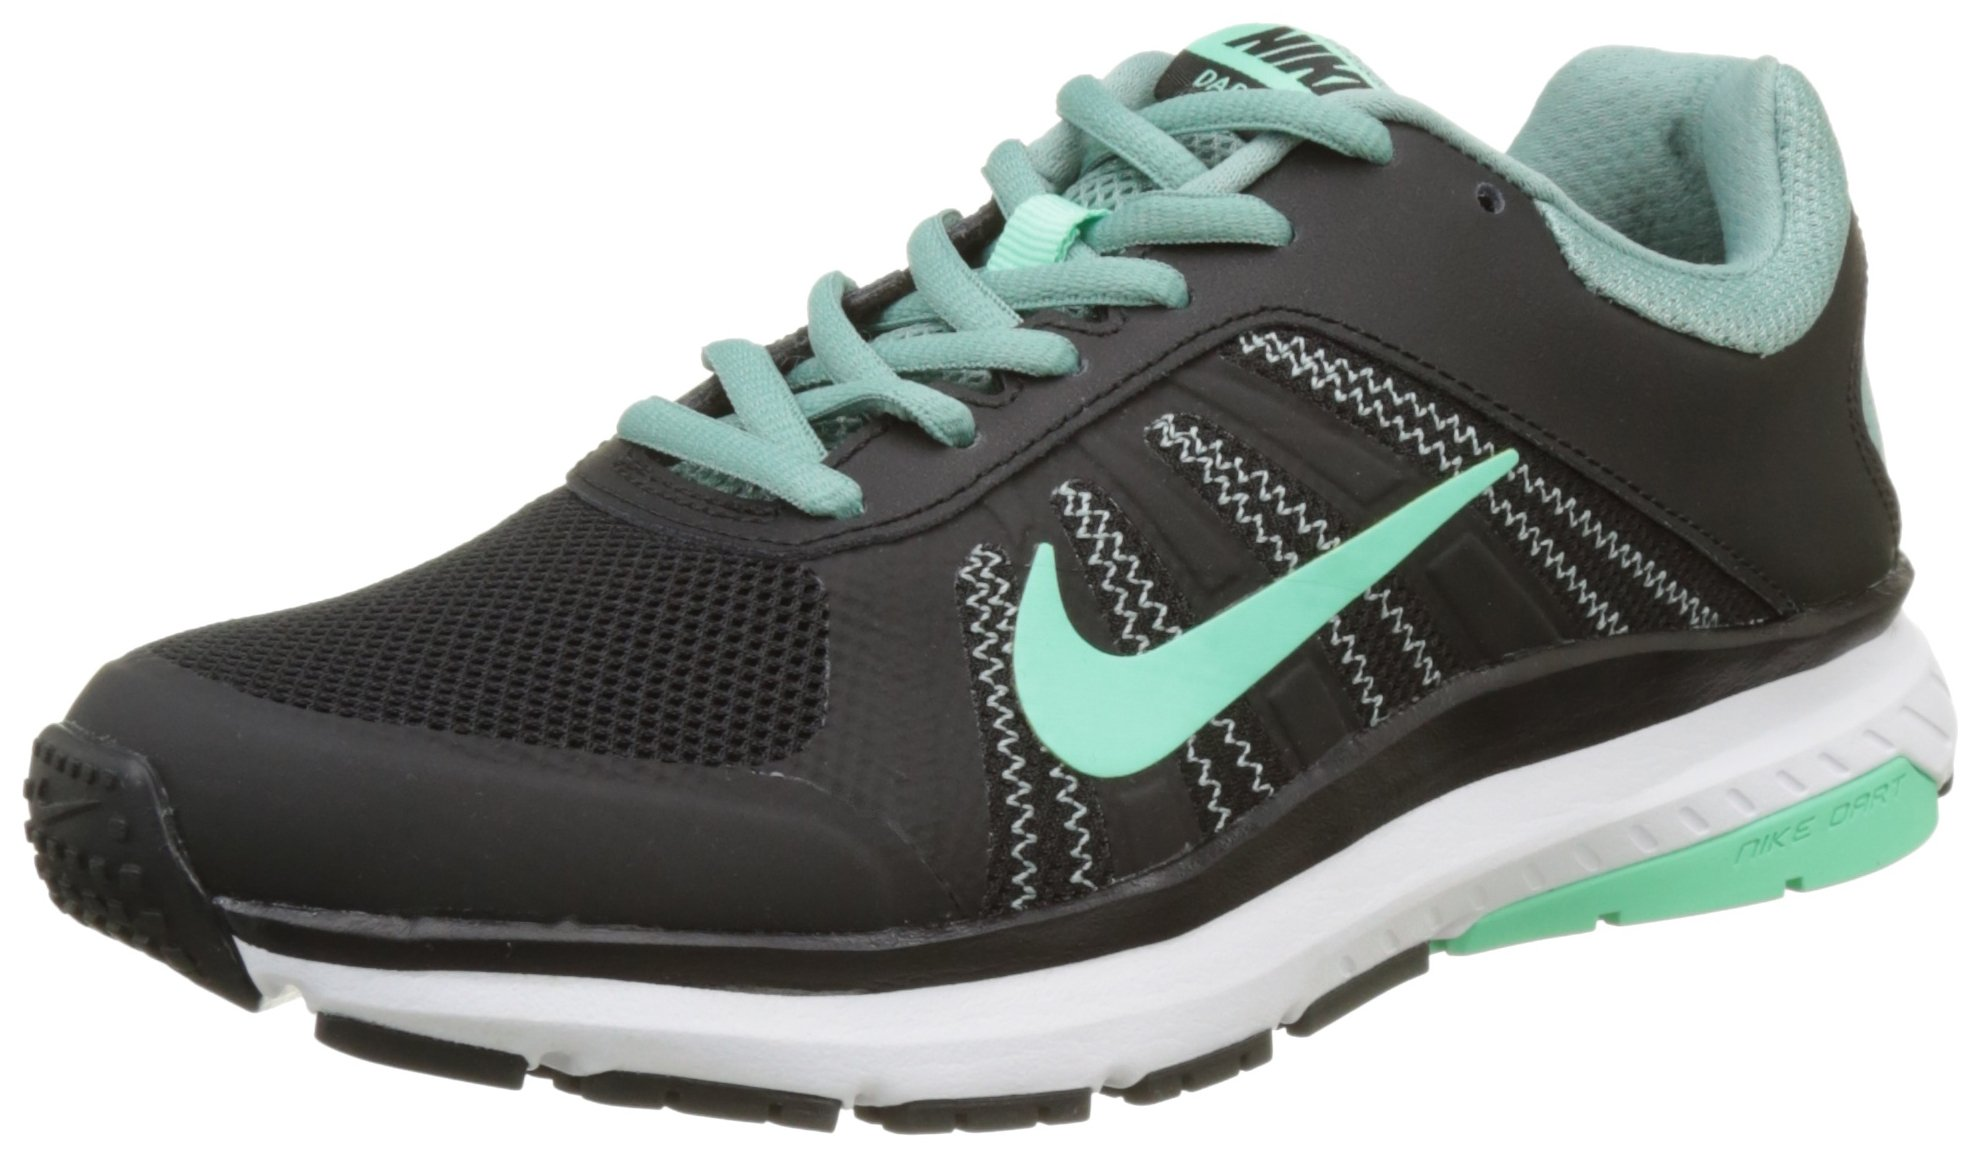 Nike Womens Dart 12 Running Trainers 831535 Sneakers Shoes (US 6.5, Black Green Glow Cannon 005)